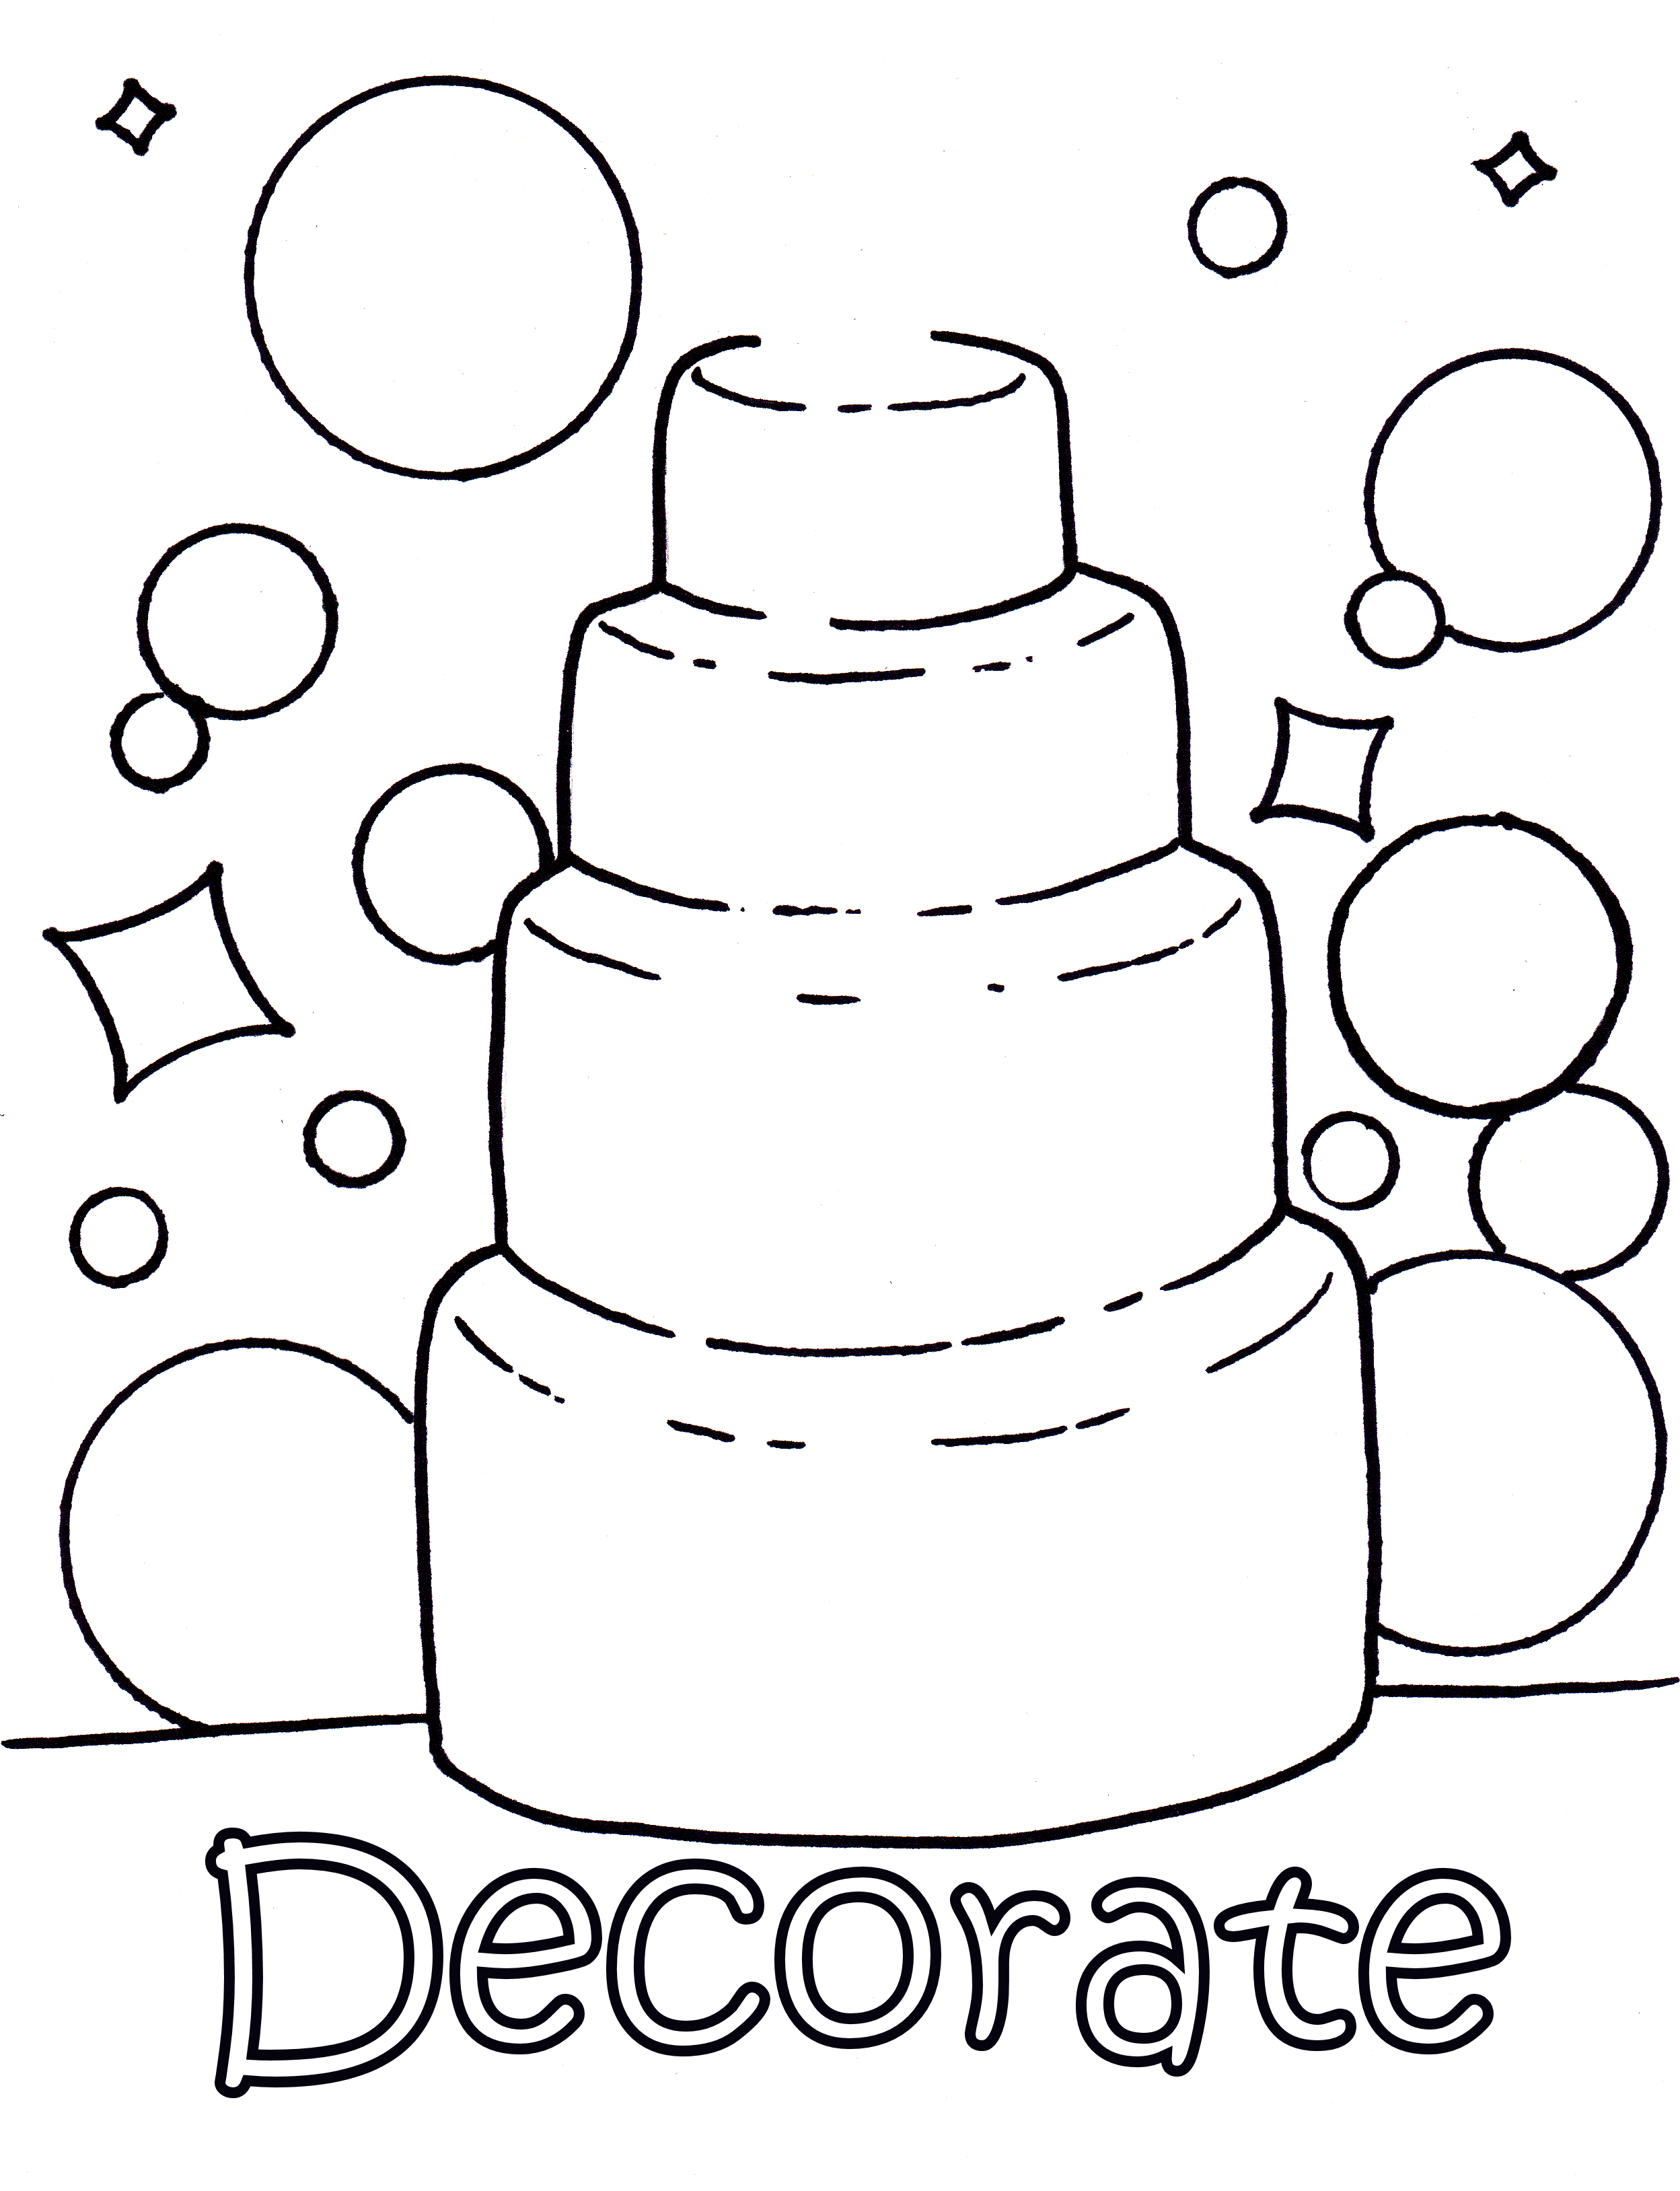 Free coloring pages to print and color - Decorate Your Own Wedding Cake Colouring Page